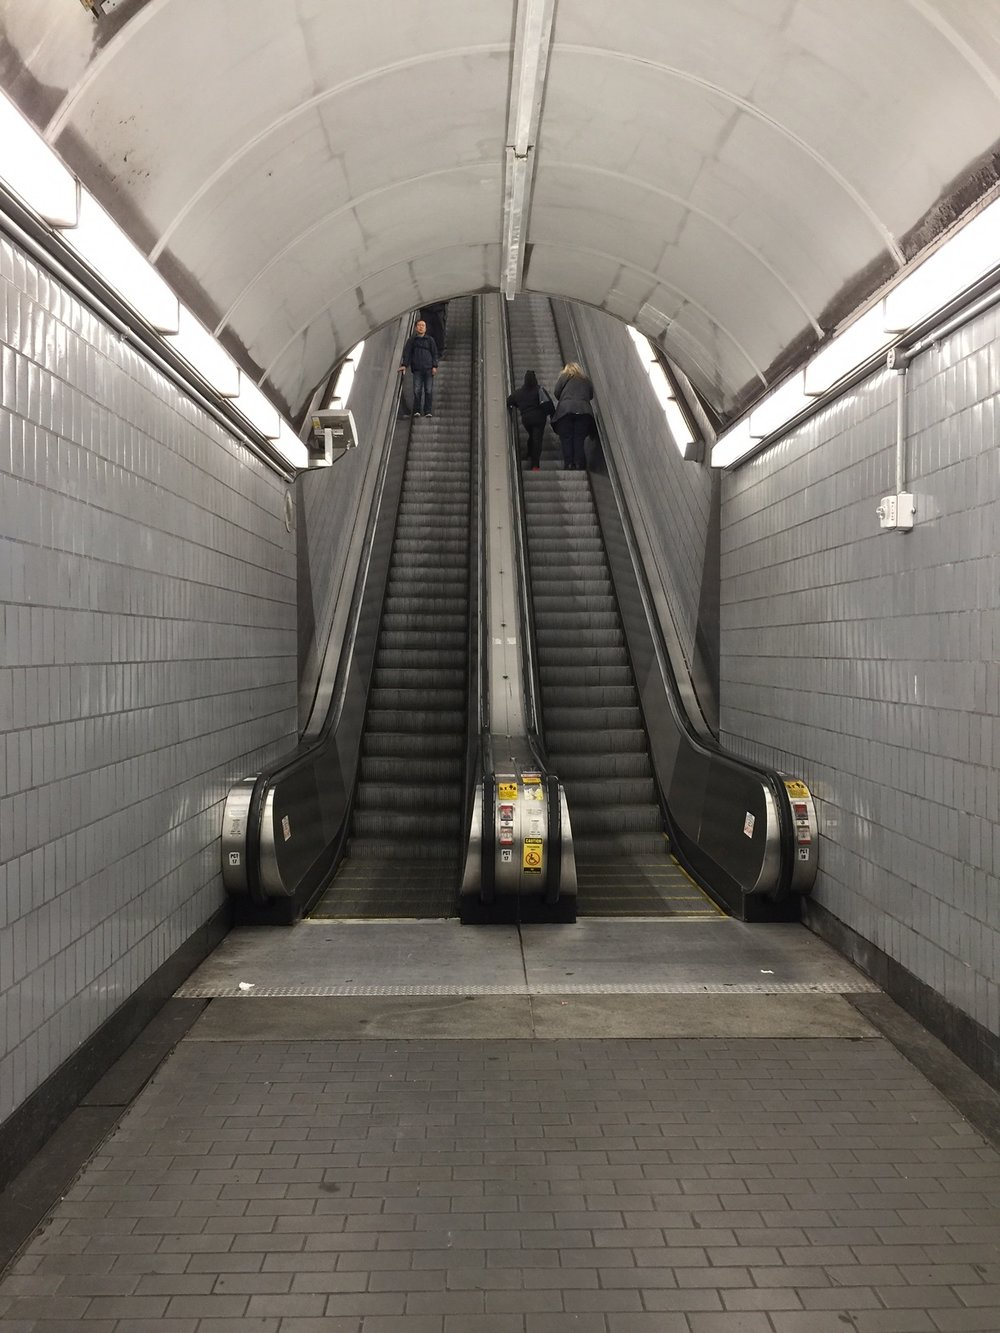 Go up the long, long escalator.